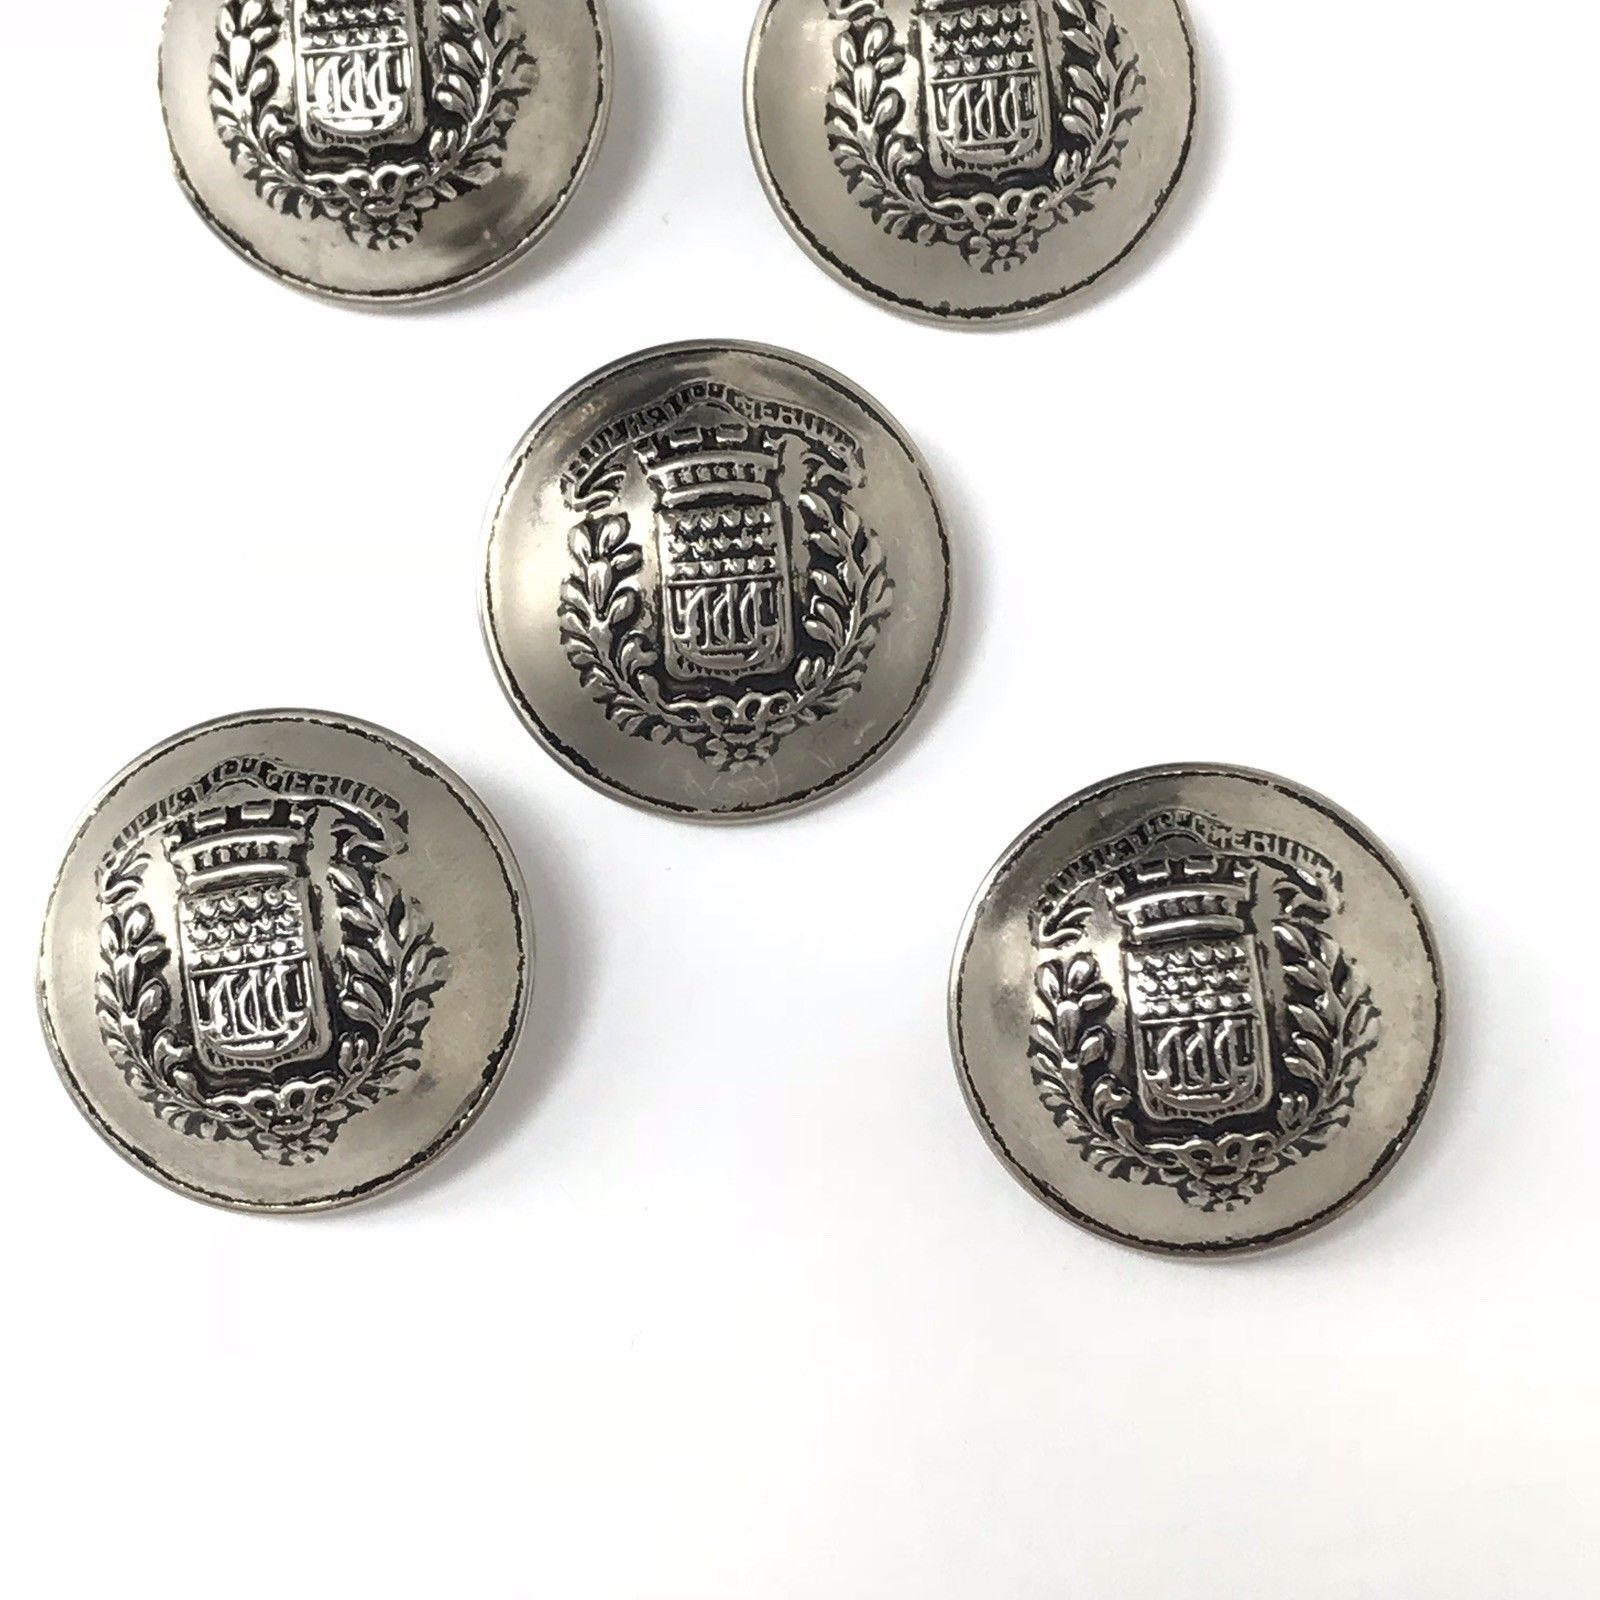 "Vintage Domed Metal Buttons Silver Tone Crest Military Coat 1 1/8"" Lot of 5"